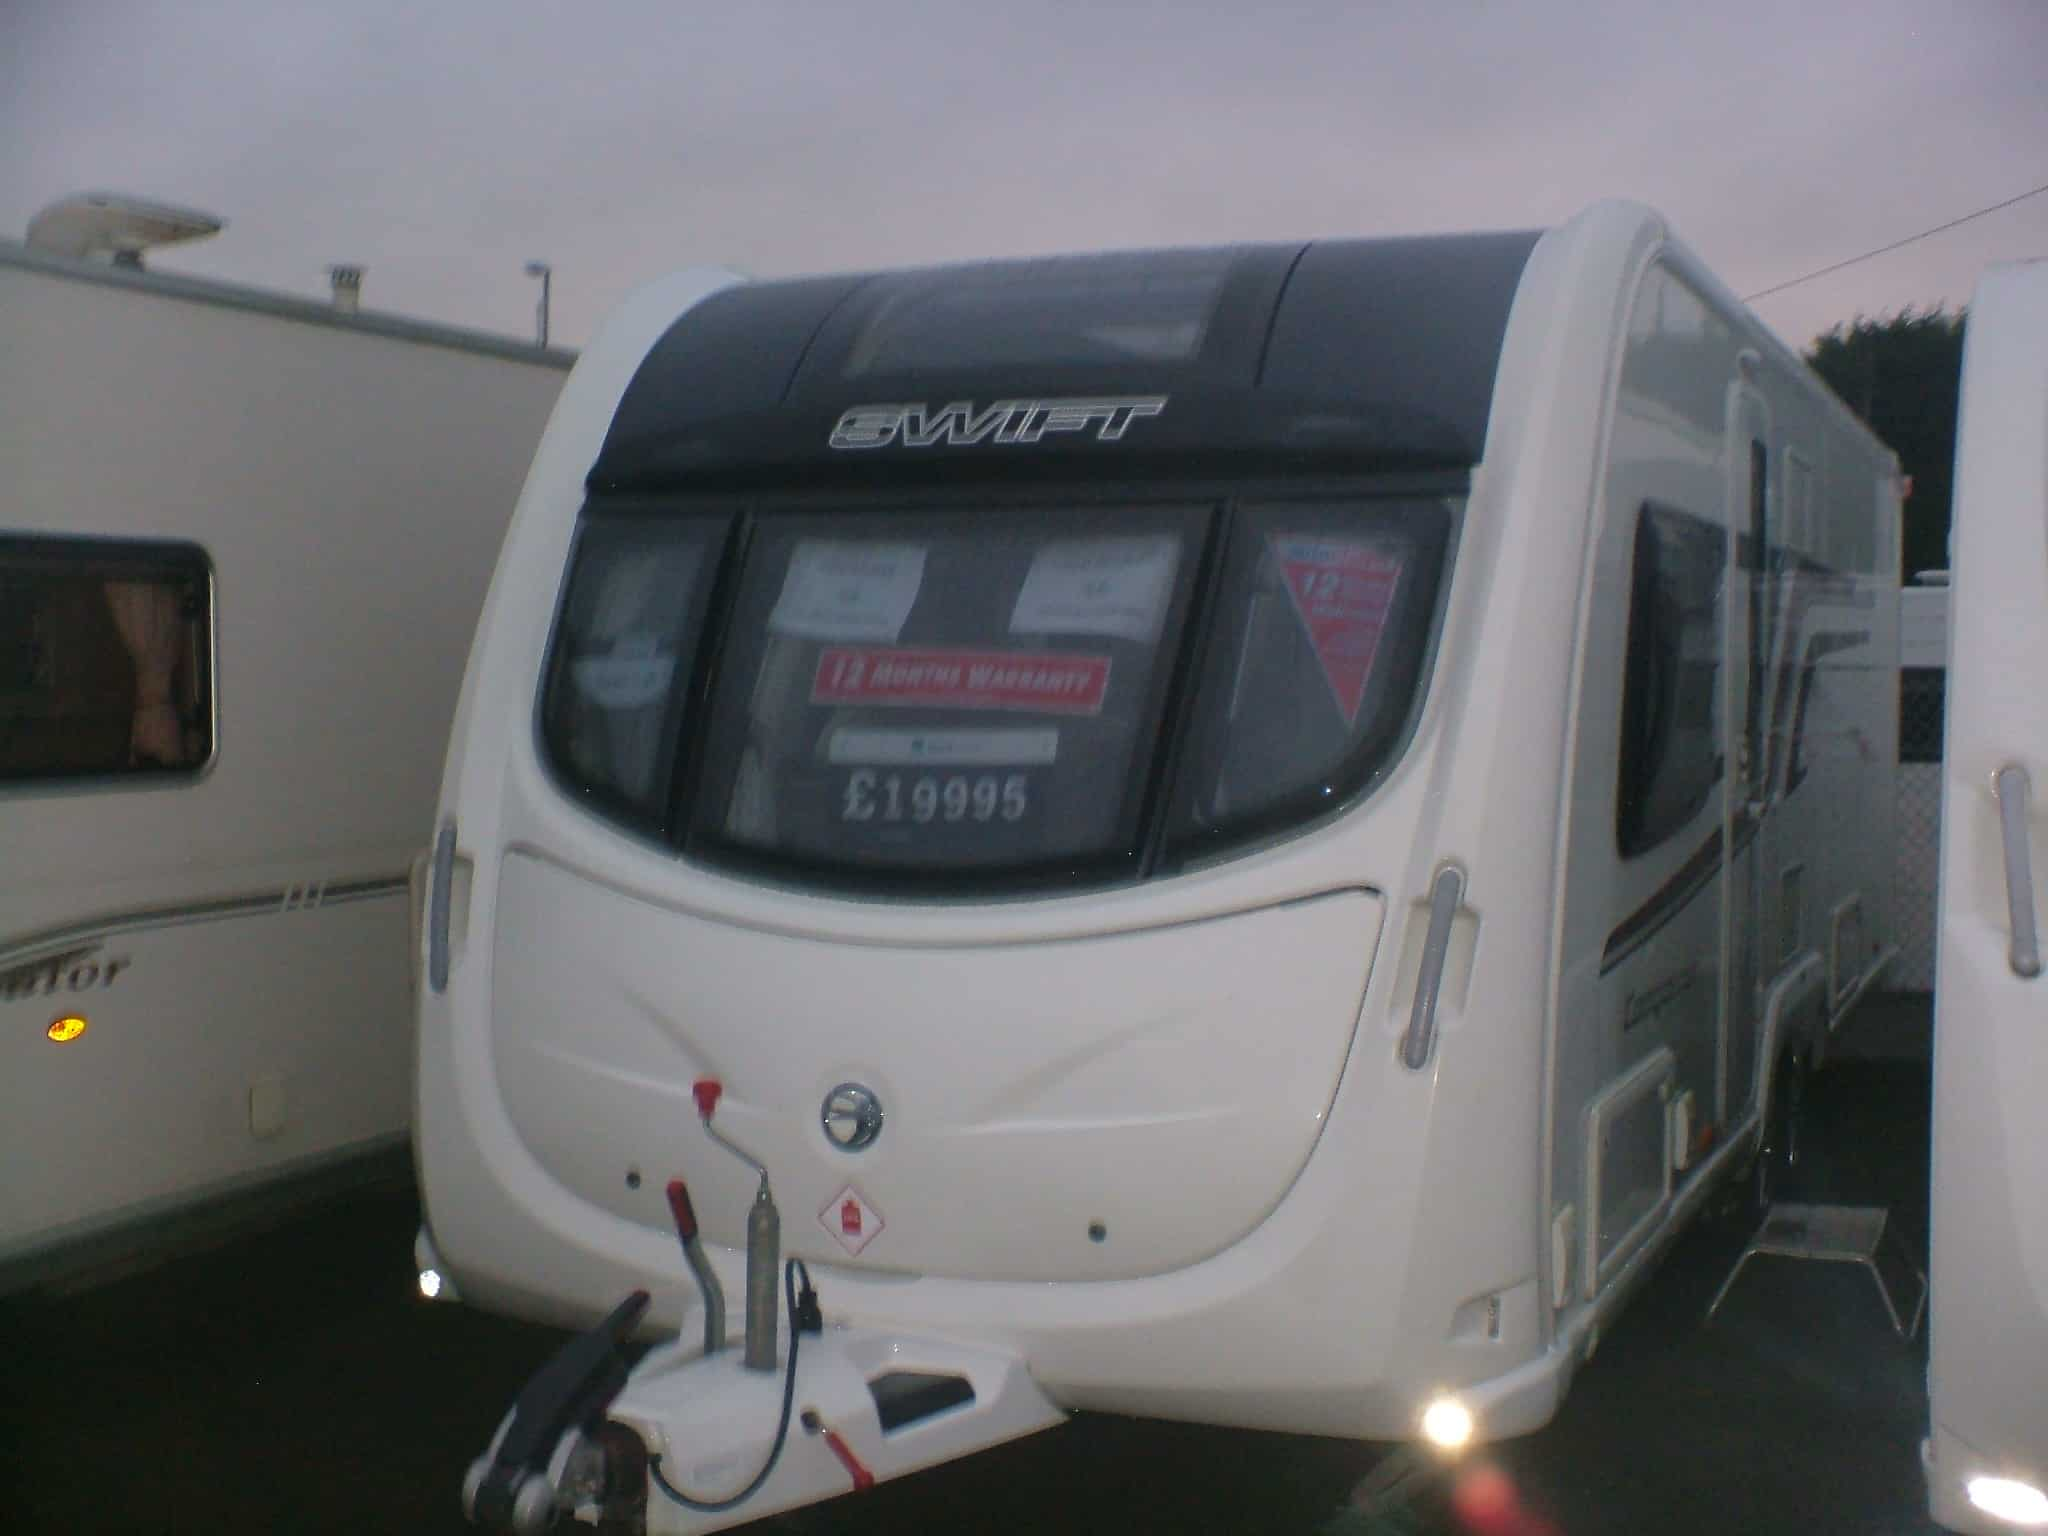 Bailey Wales Caravans In Swansea Caravans In Wales | Autos Post